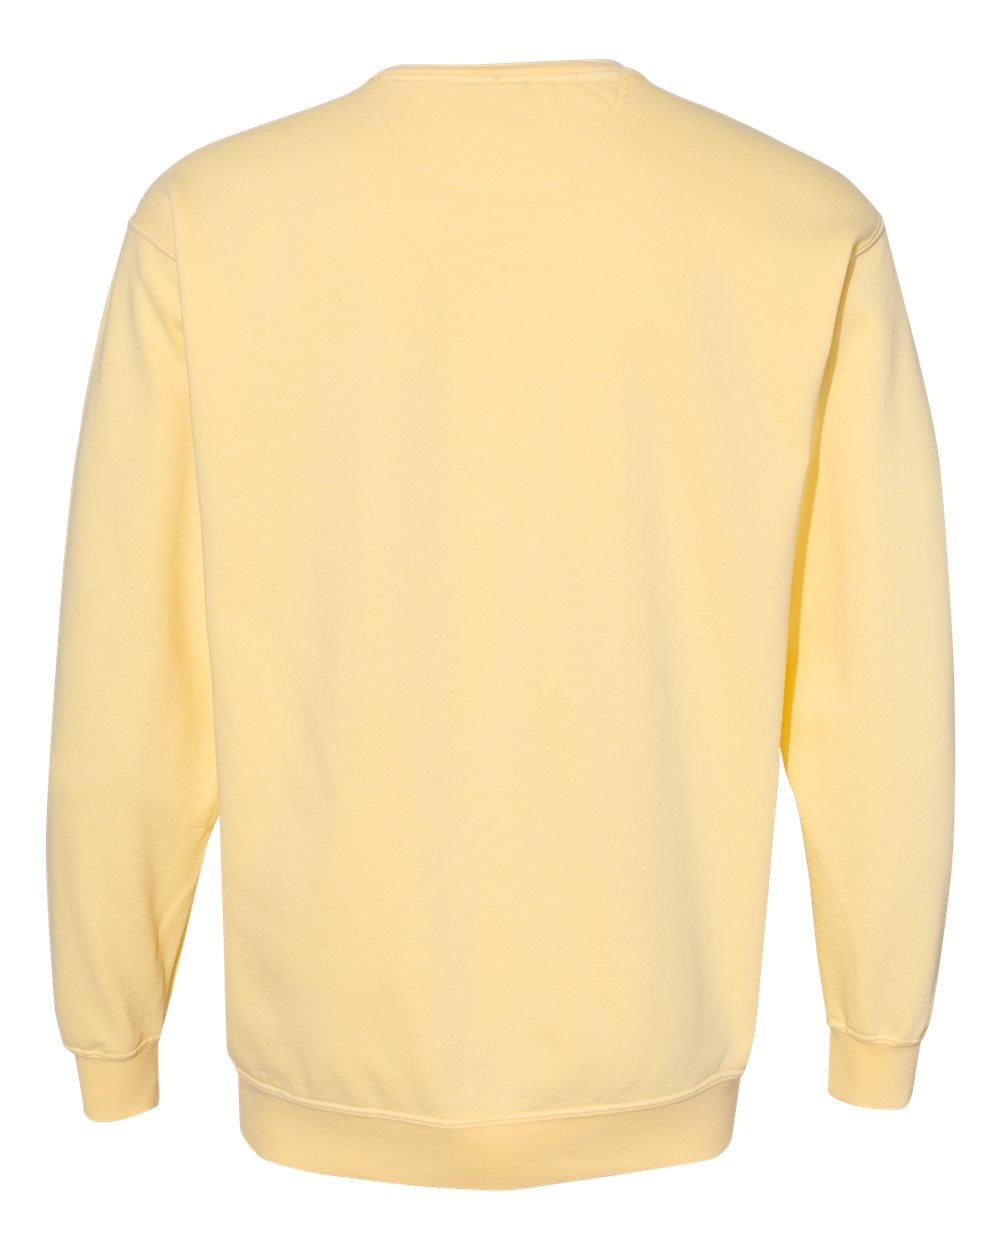 Comfort-Colors-Mens-Garment-Dyed-Ringspun-Crewneck-Sweatshirt-1566-up-to-3XL miniature 16